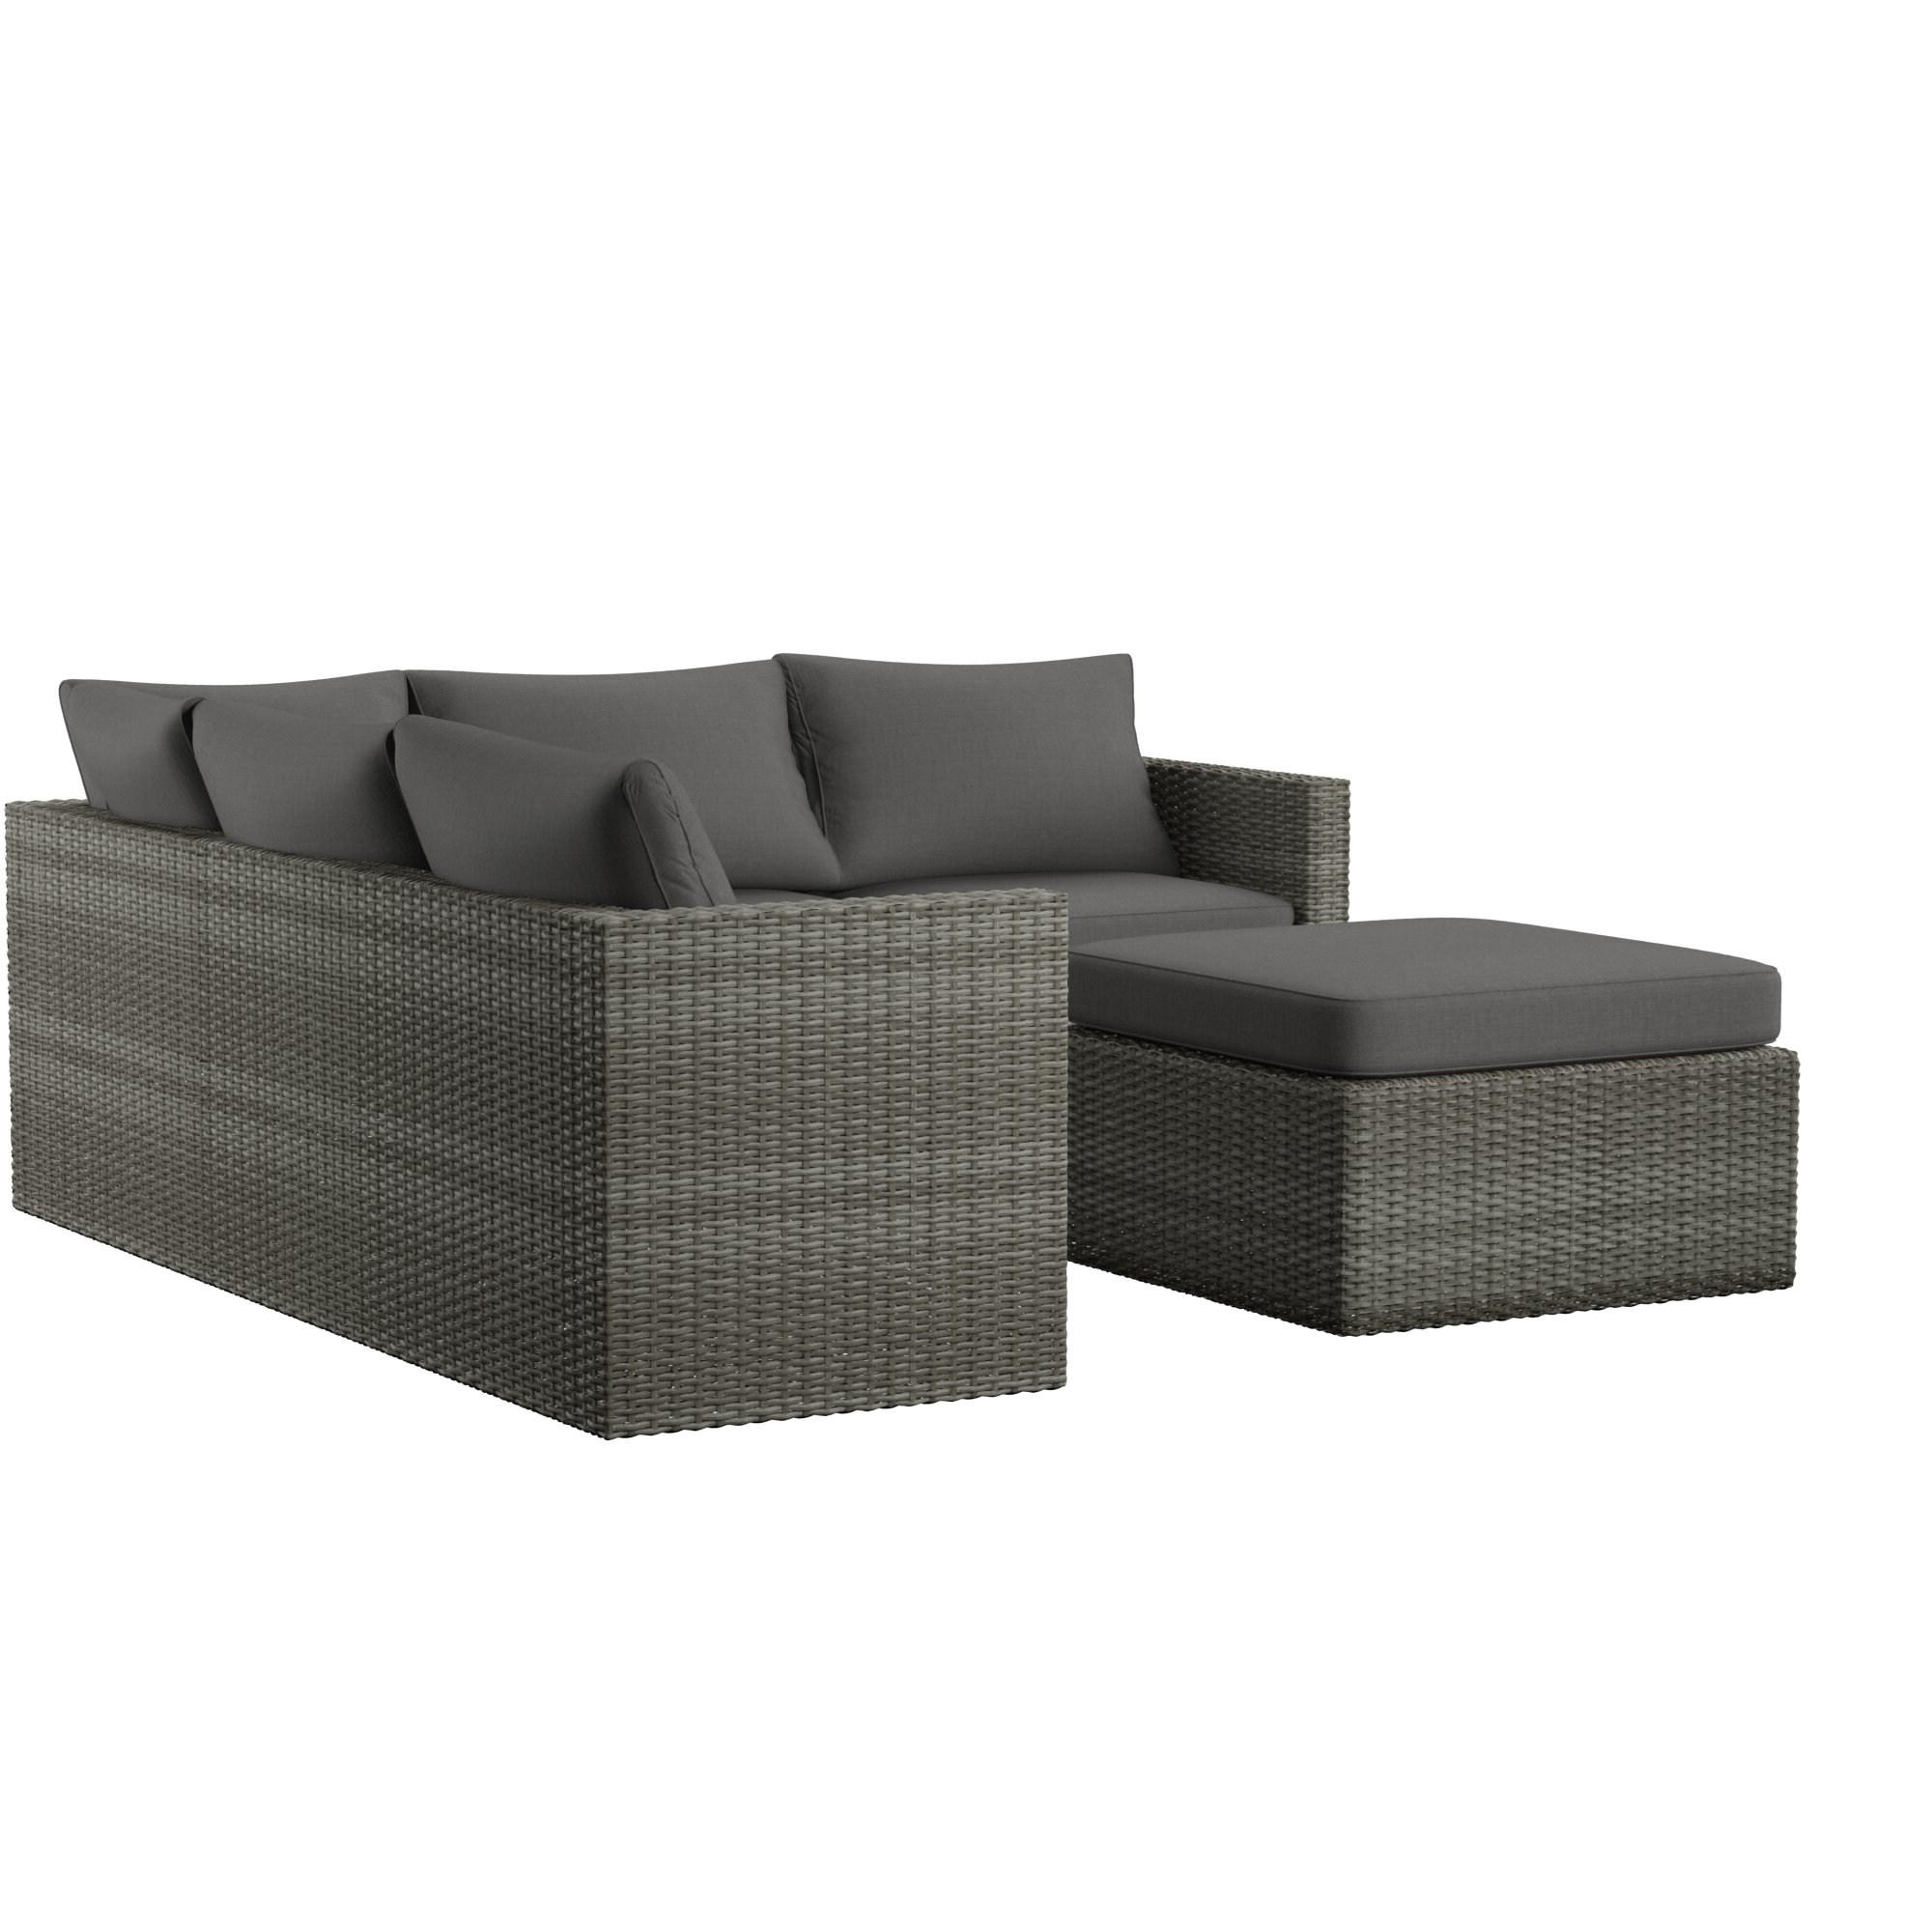 Lorentzen Patio Sectional With Cushions With Regard To Popular Ellison Patio Sectionals With Cushions (View 14 of 20)